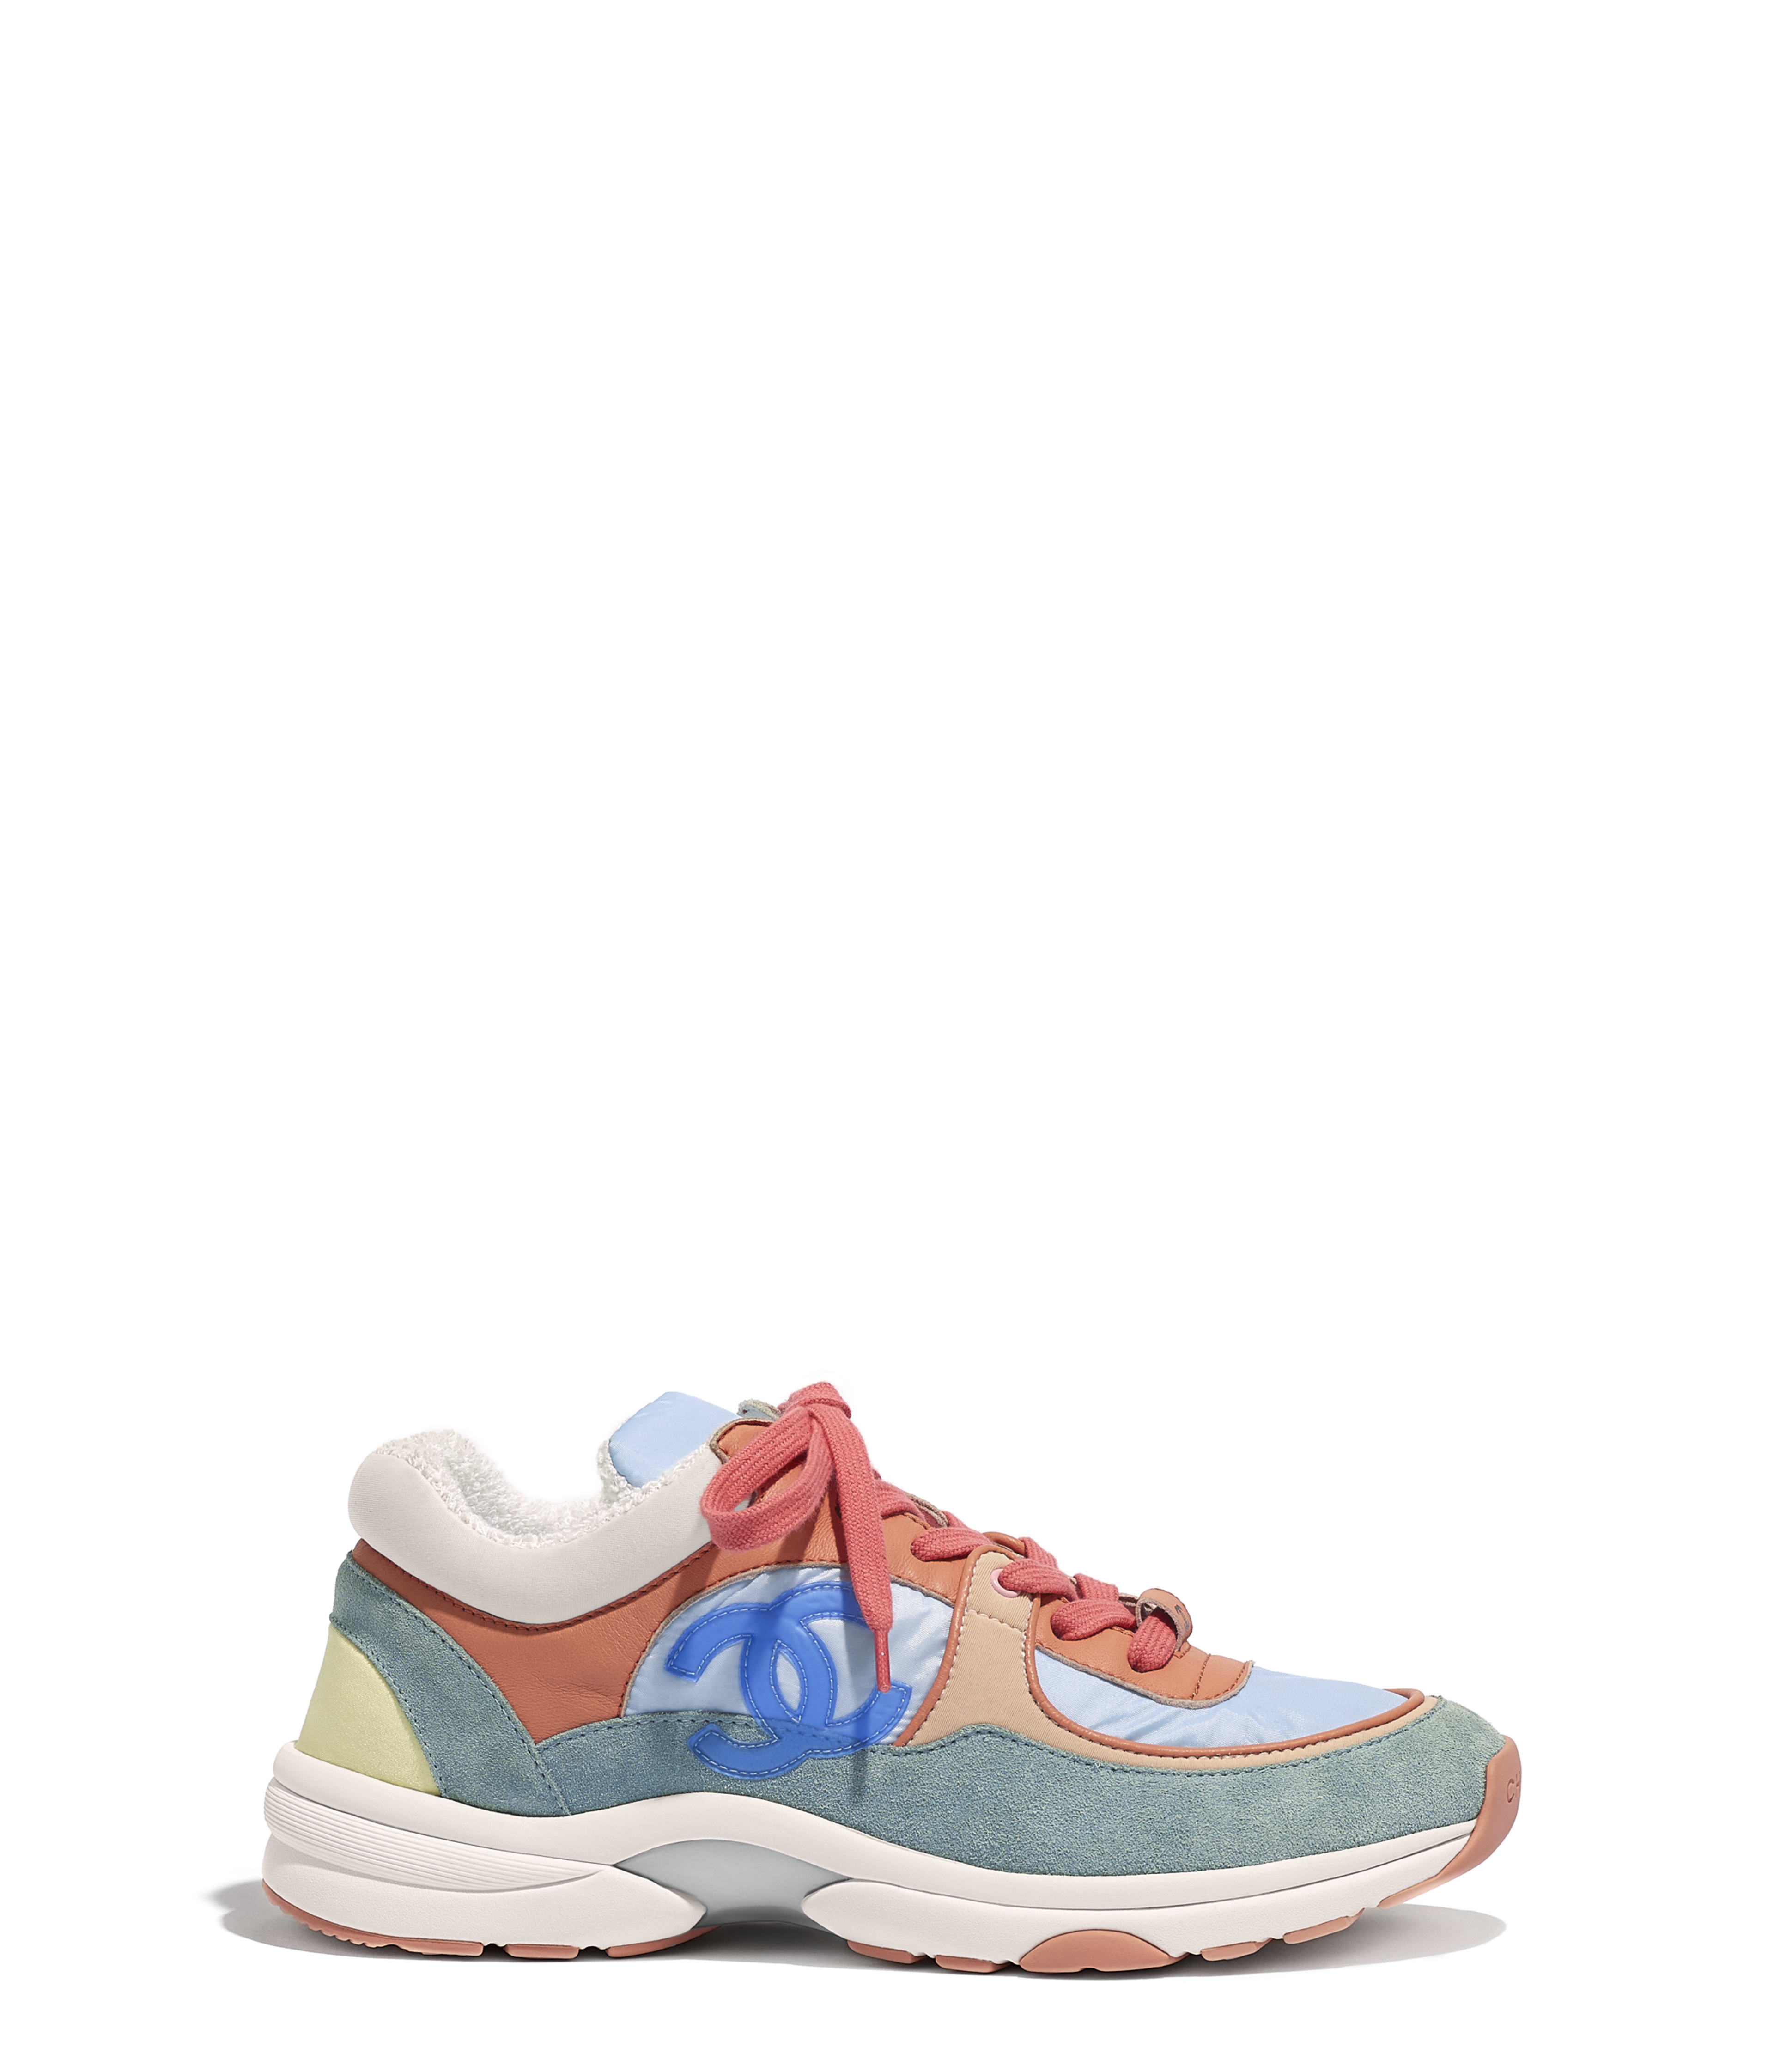 afcc2c150359 Sneakers - Shoes